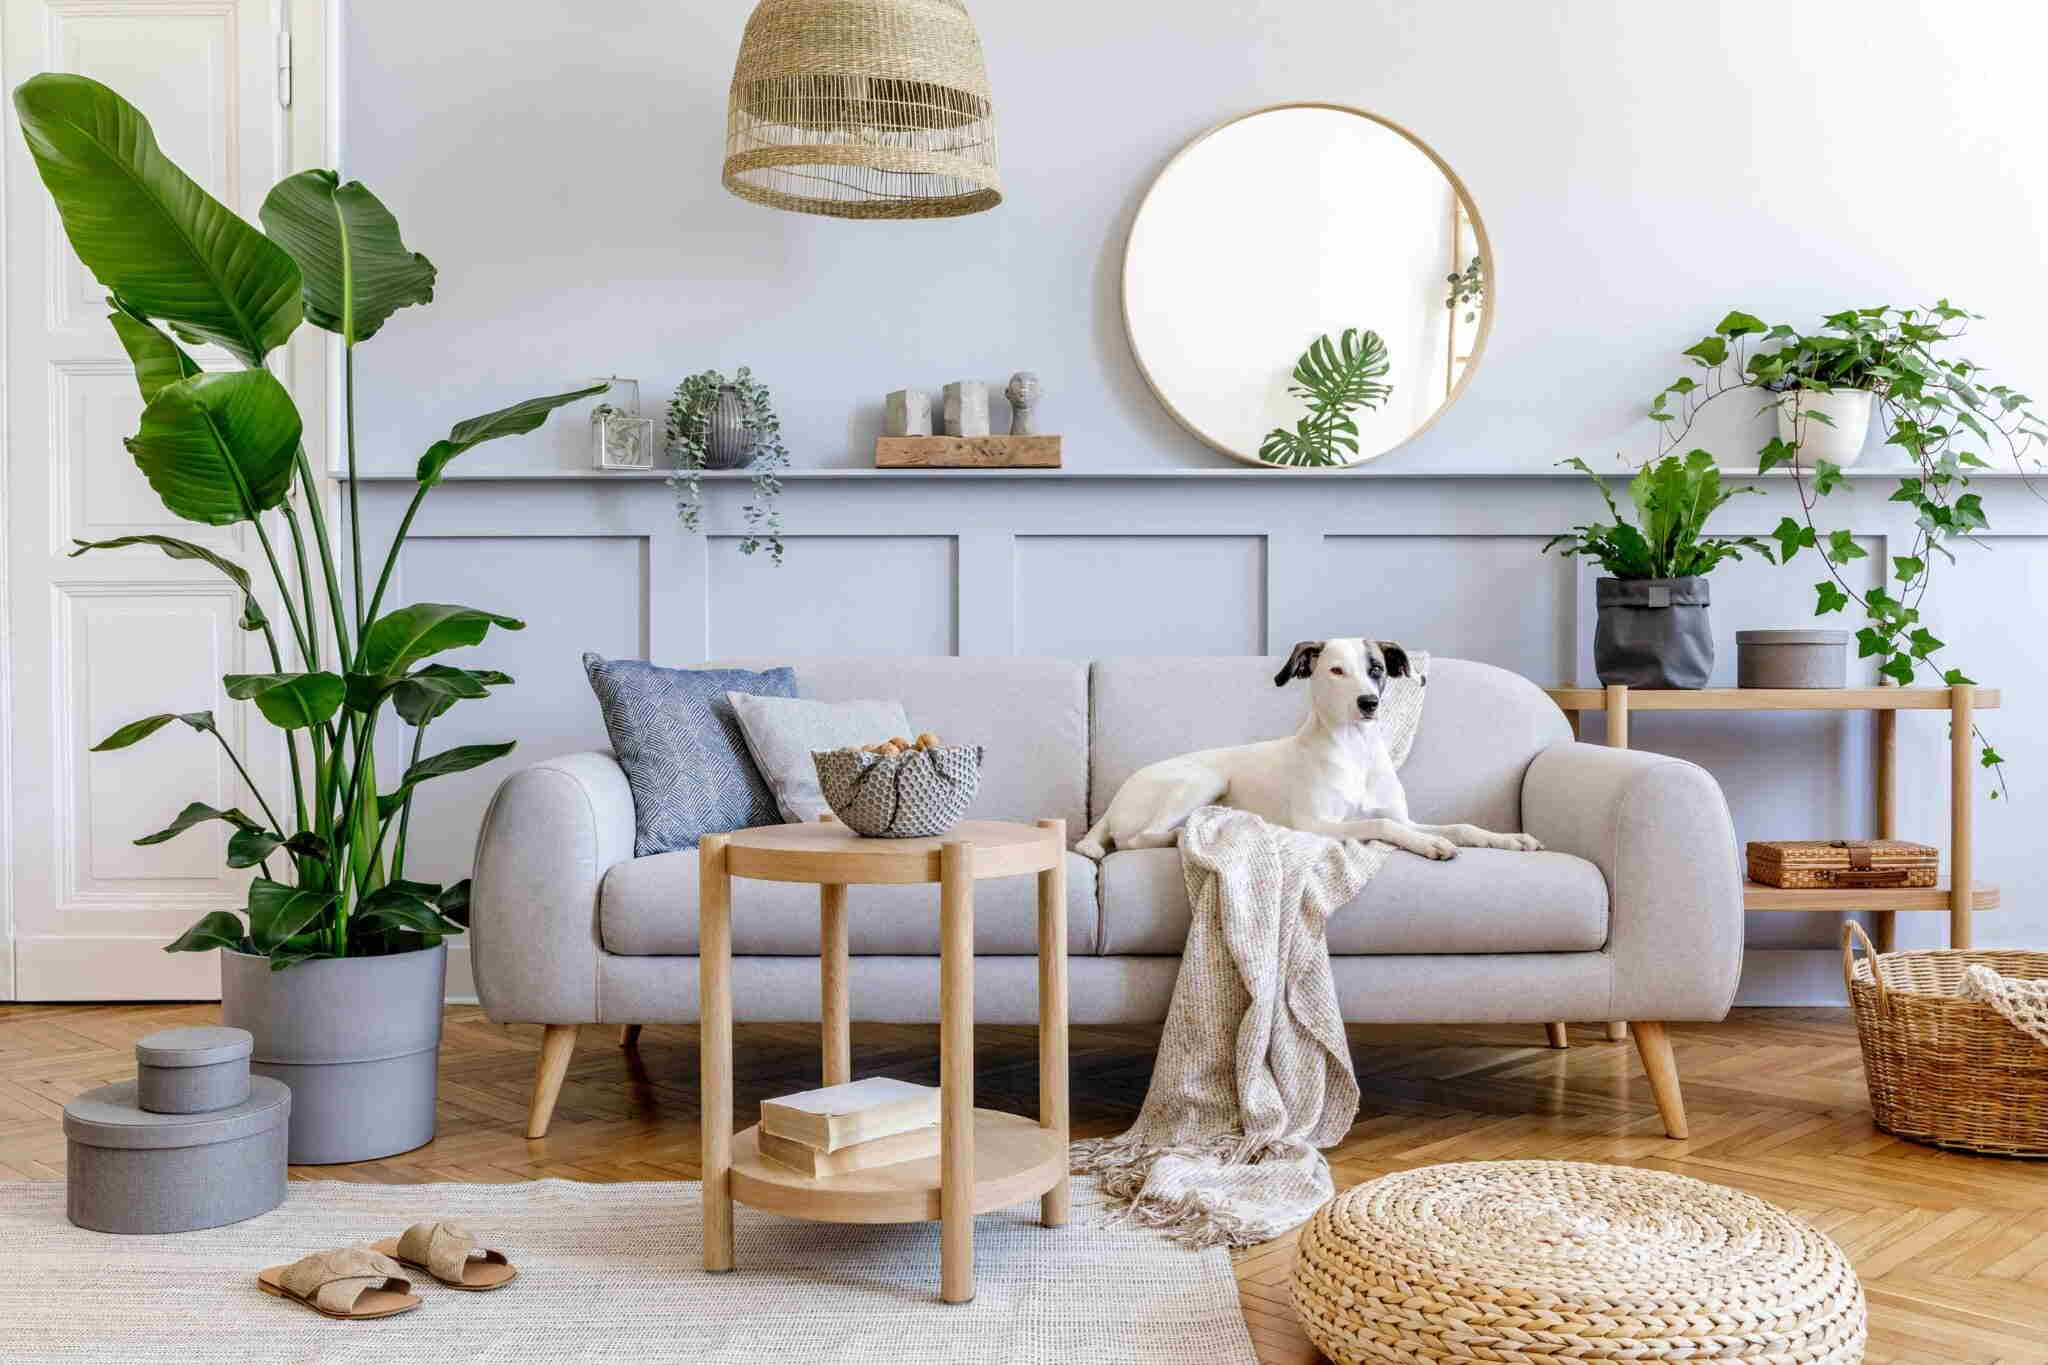 Feng Shui Living Room Tip 4: Use Flowers and Plants